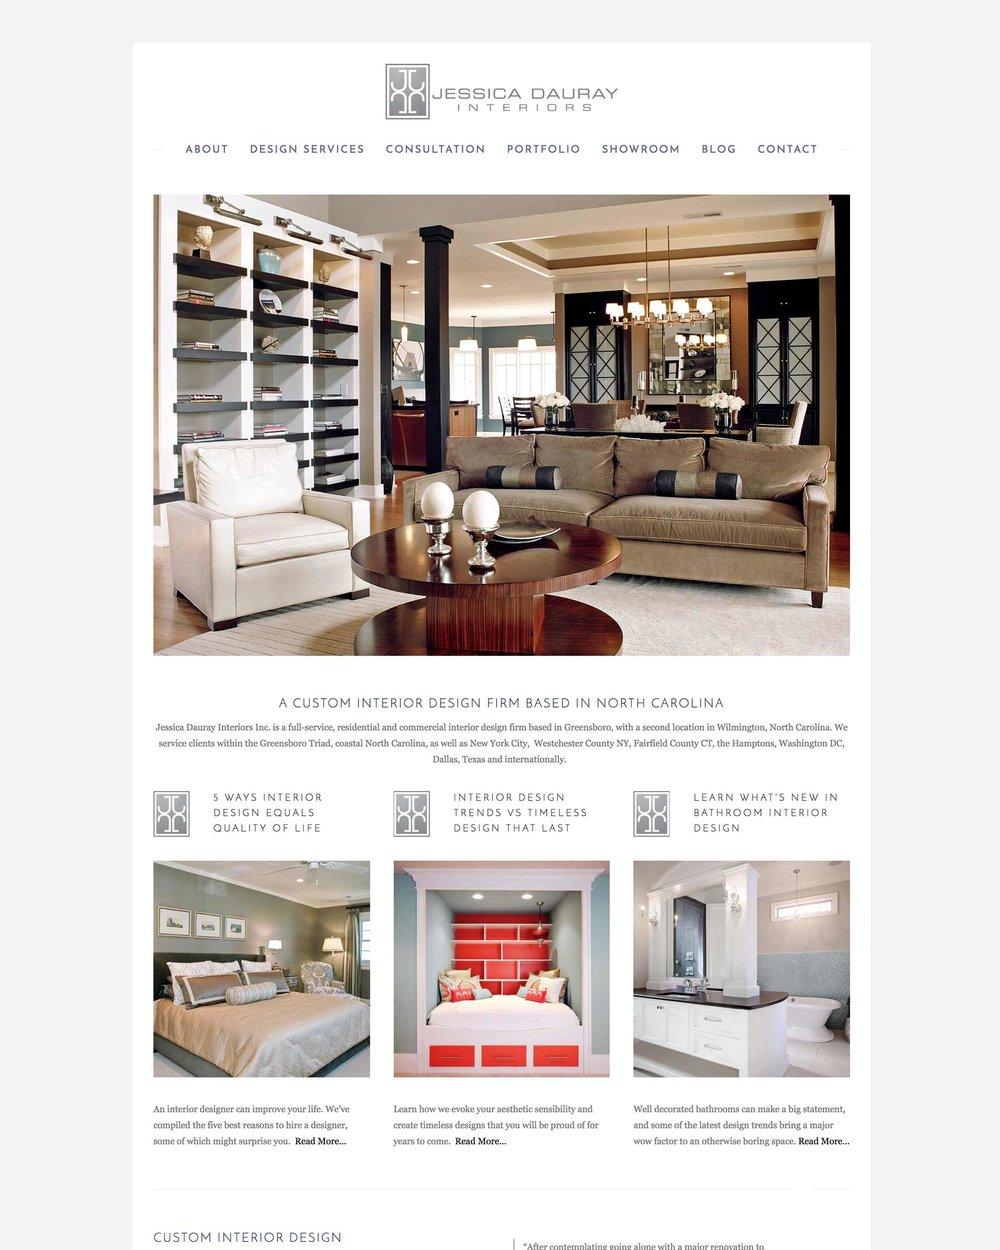 Jessica Dauray Interiors - A Residential Design Firm Located Near The High Point Furniture Market